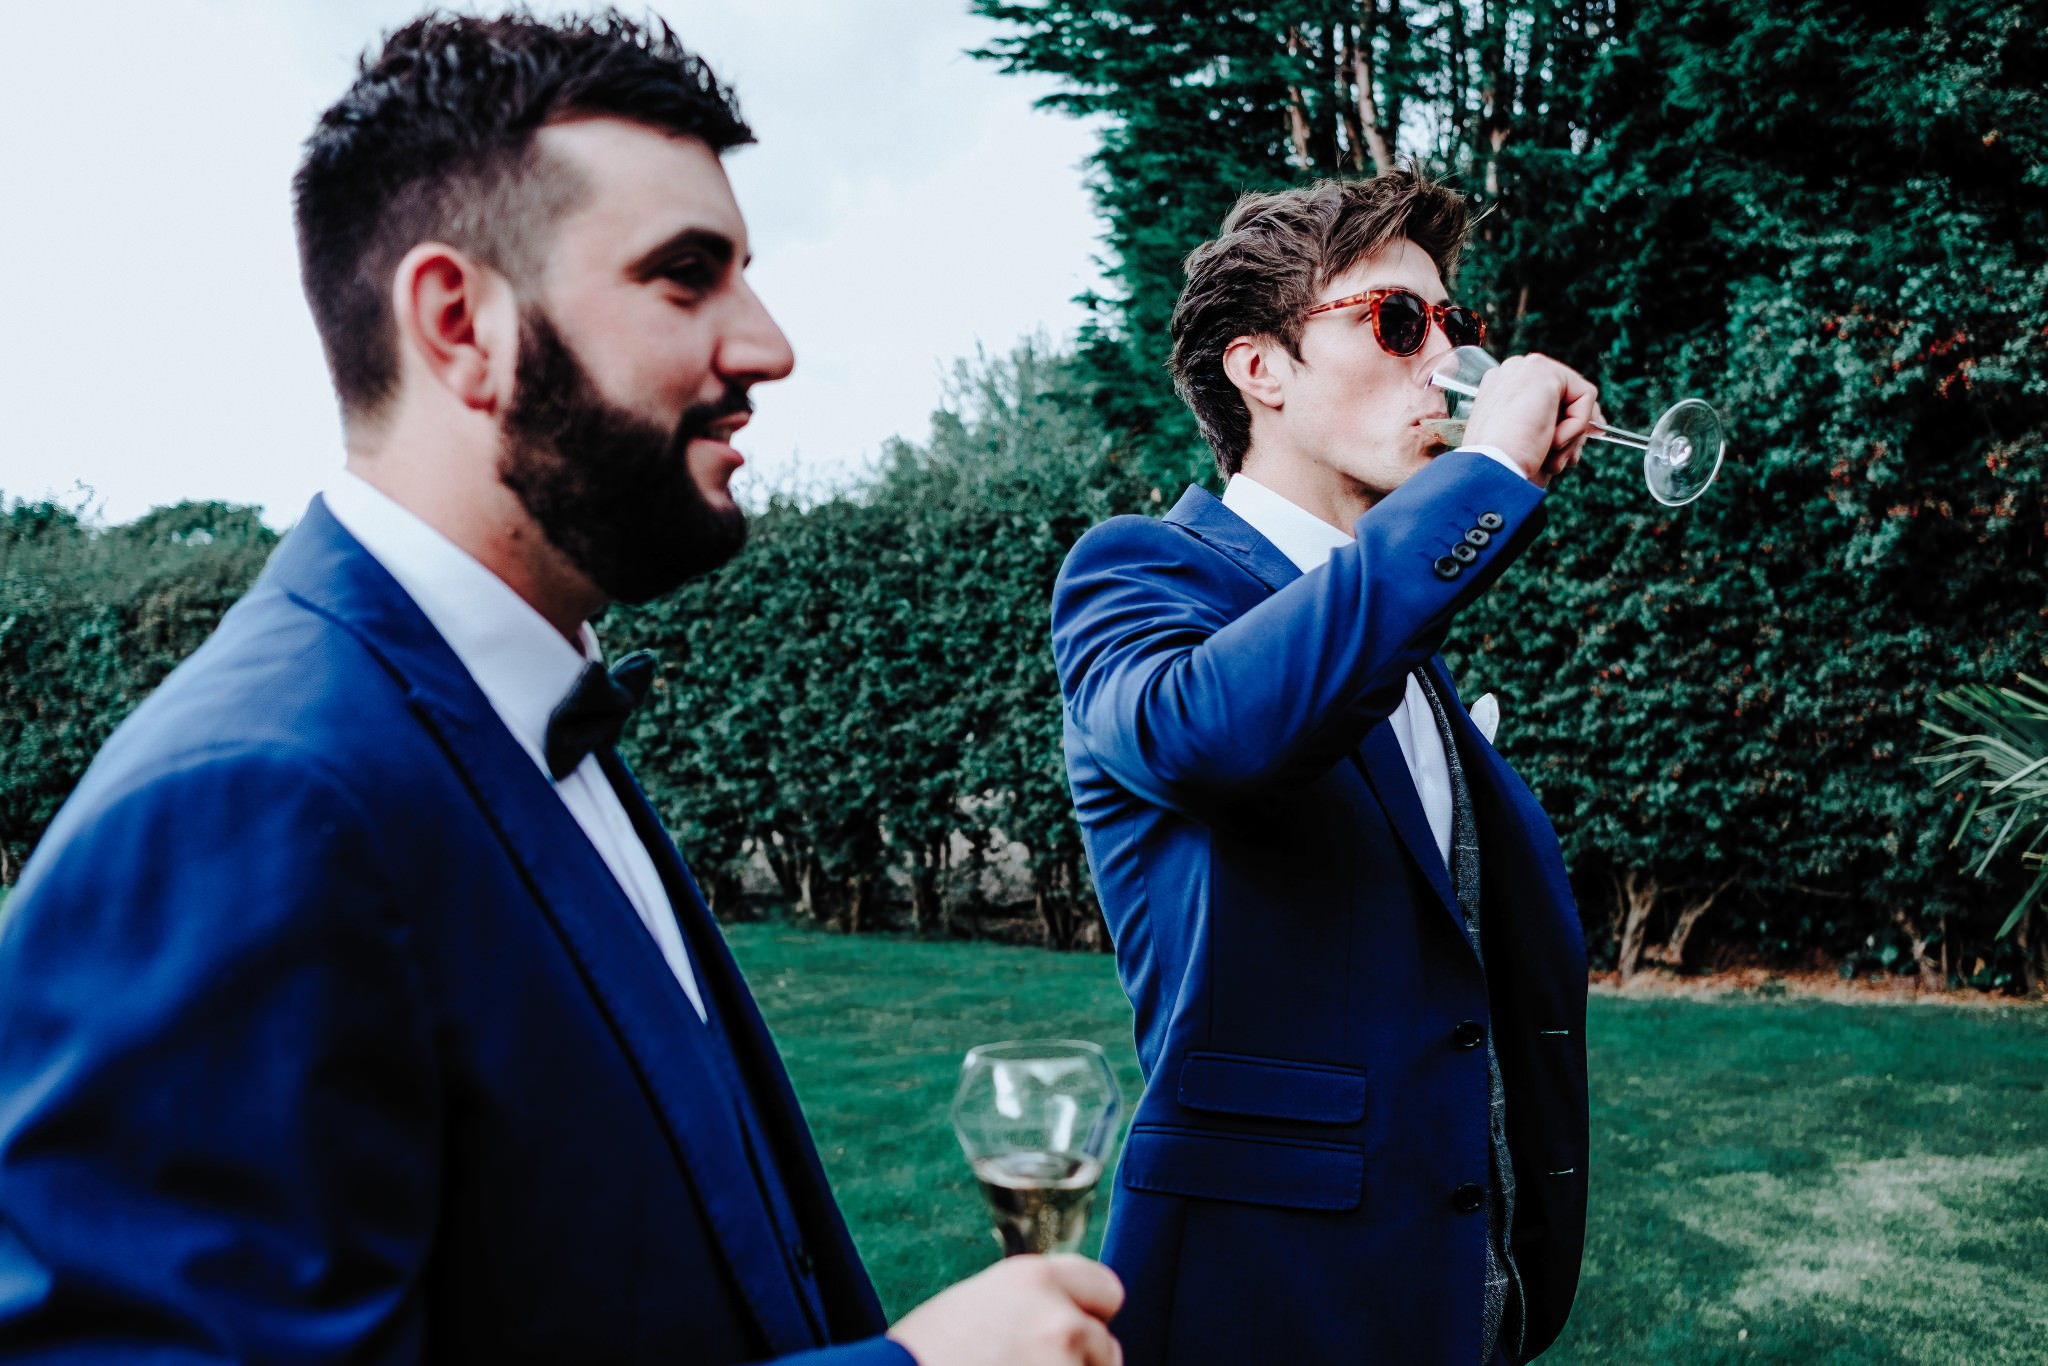 Groom drinking champagne during groom prep in Cheshire